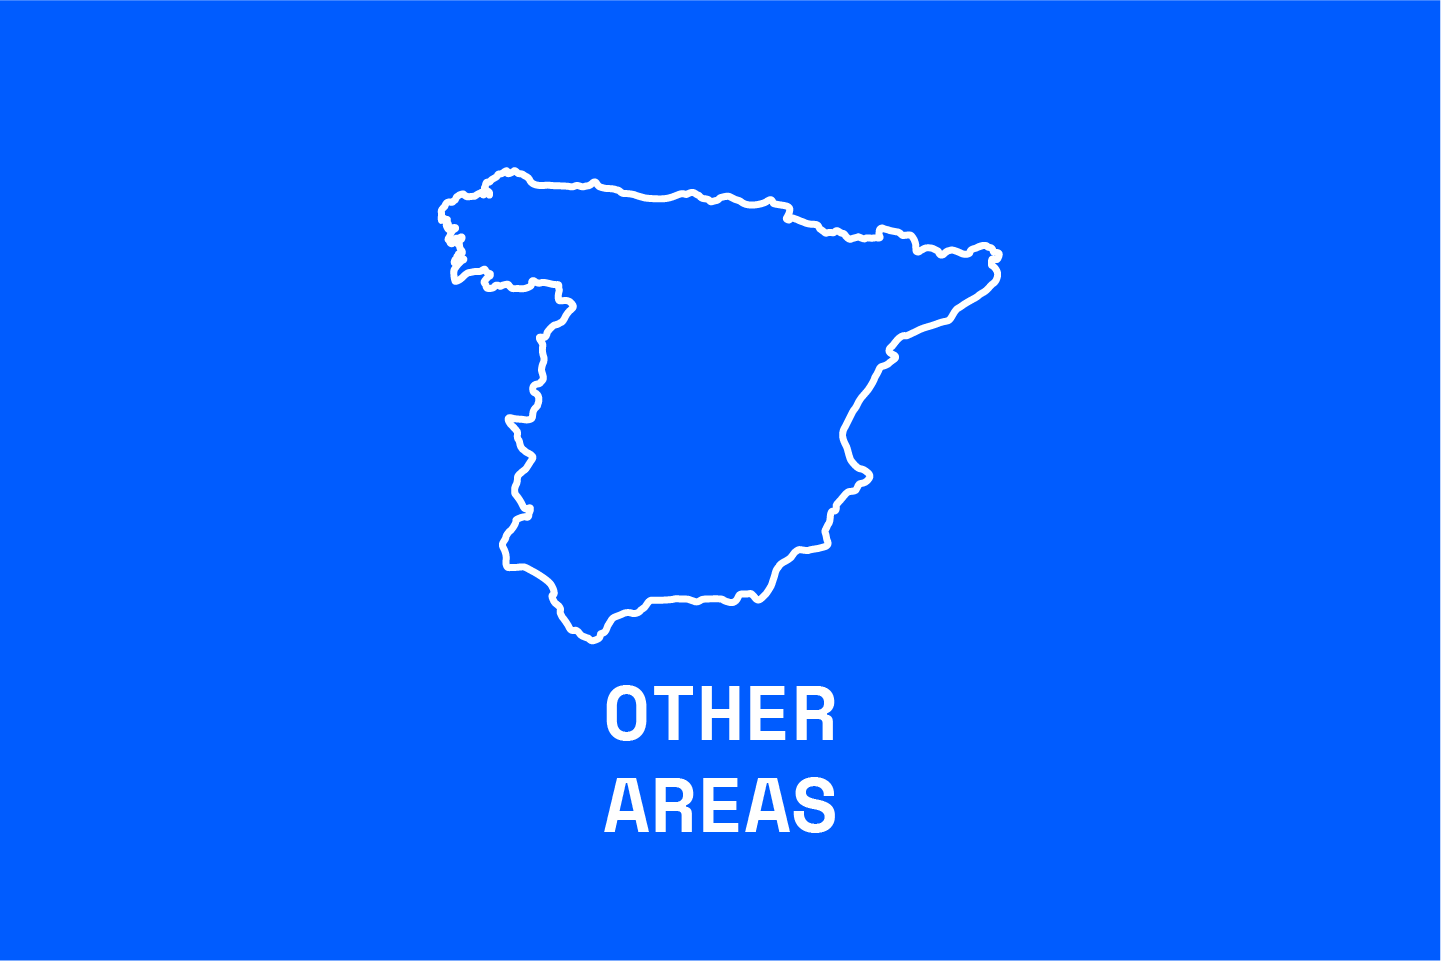 Other Areas